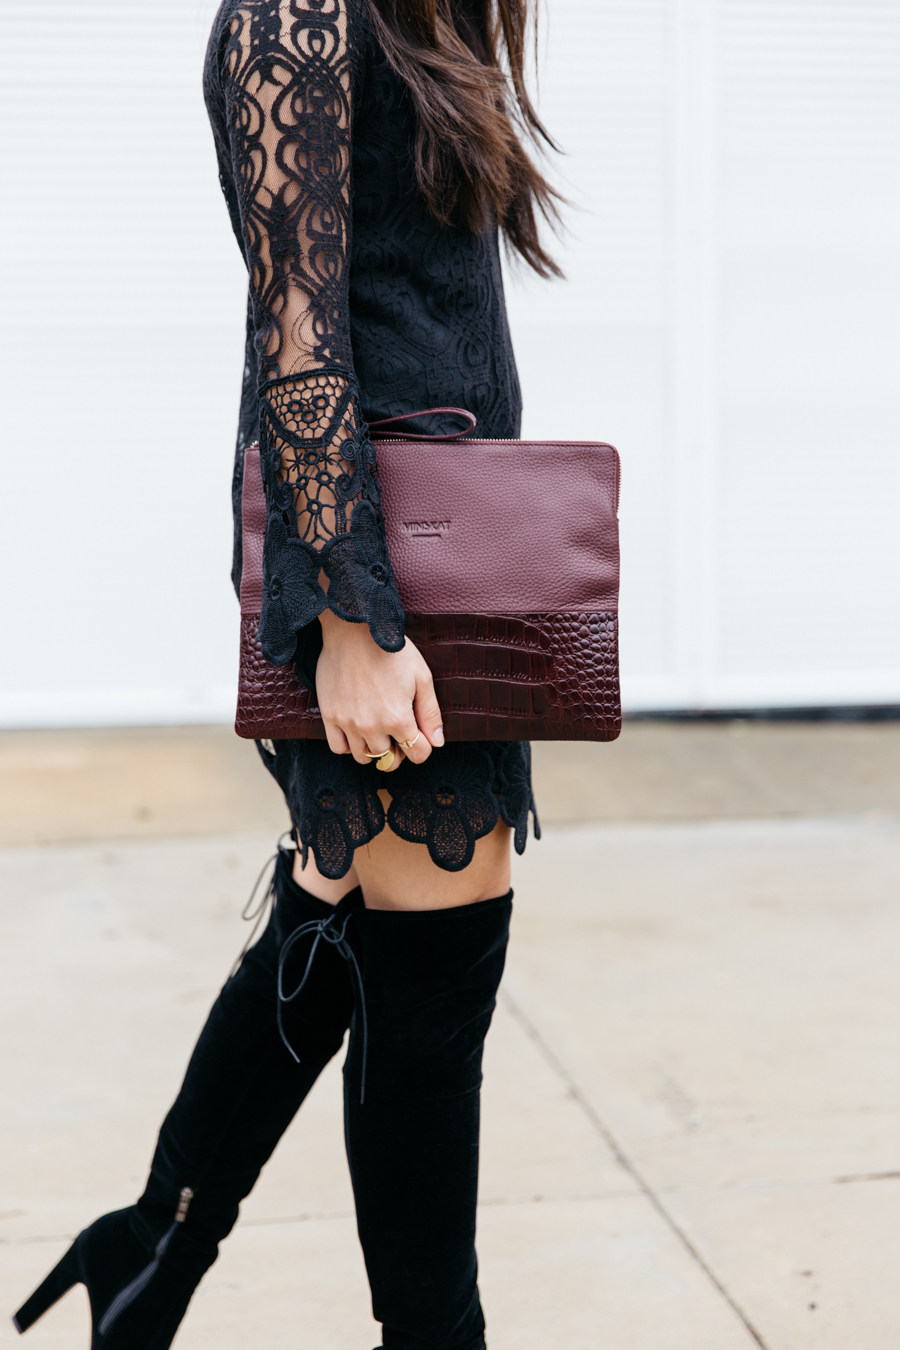 Vamp look - black lace & maroon accents.